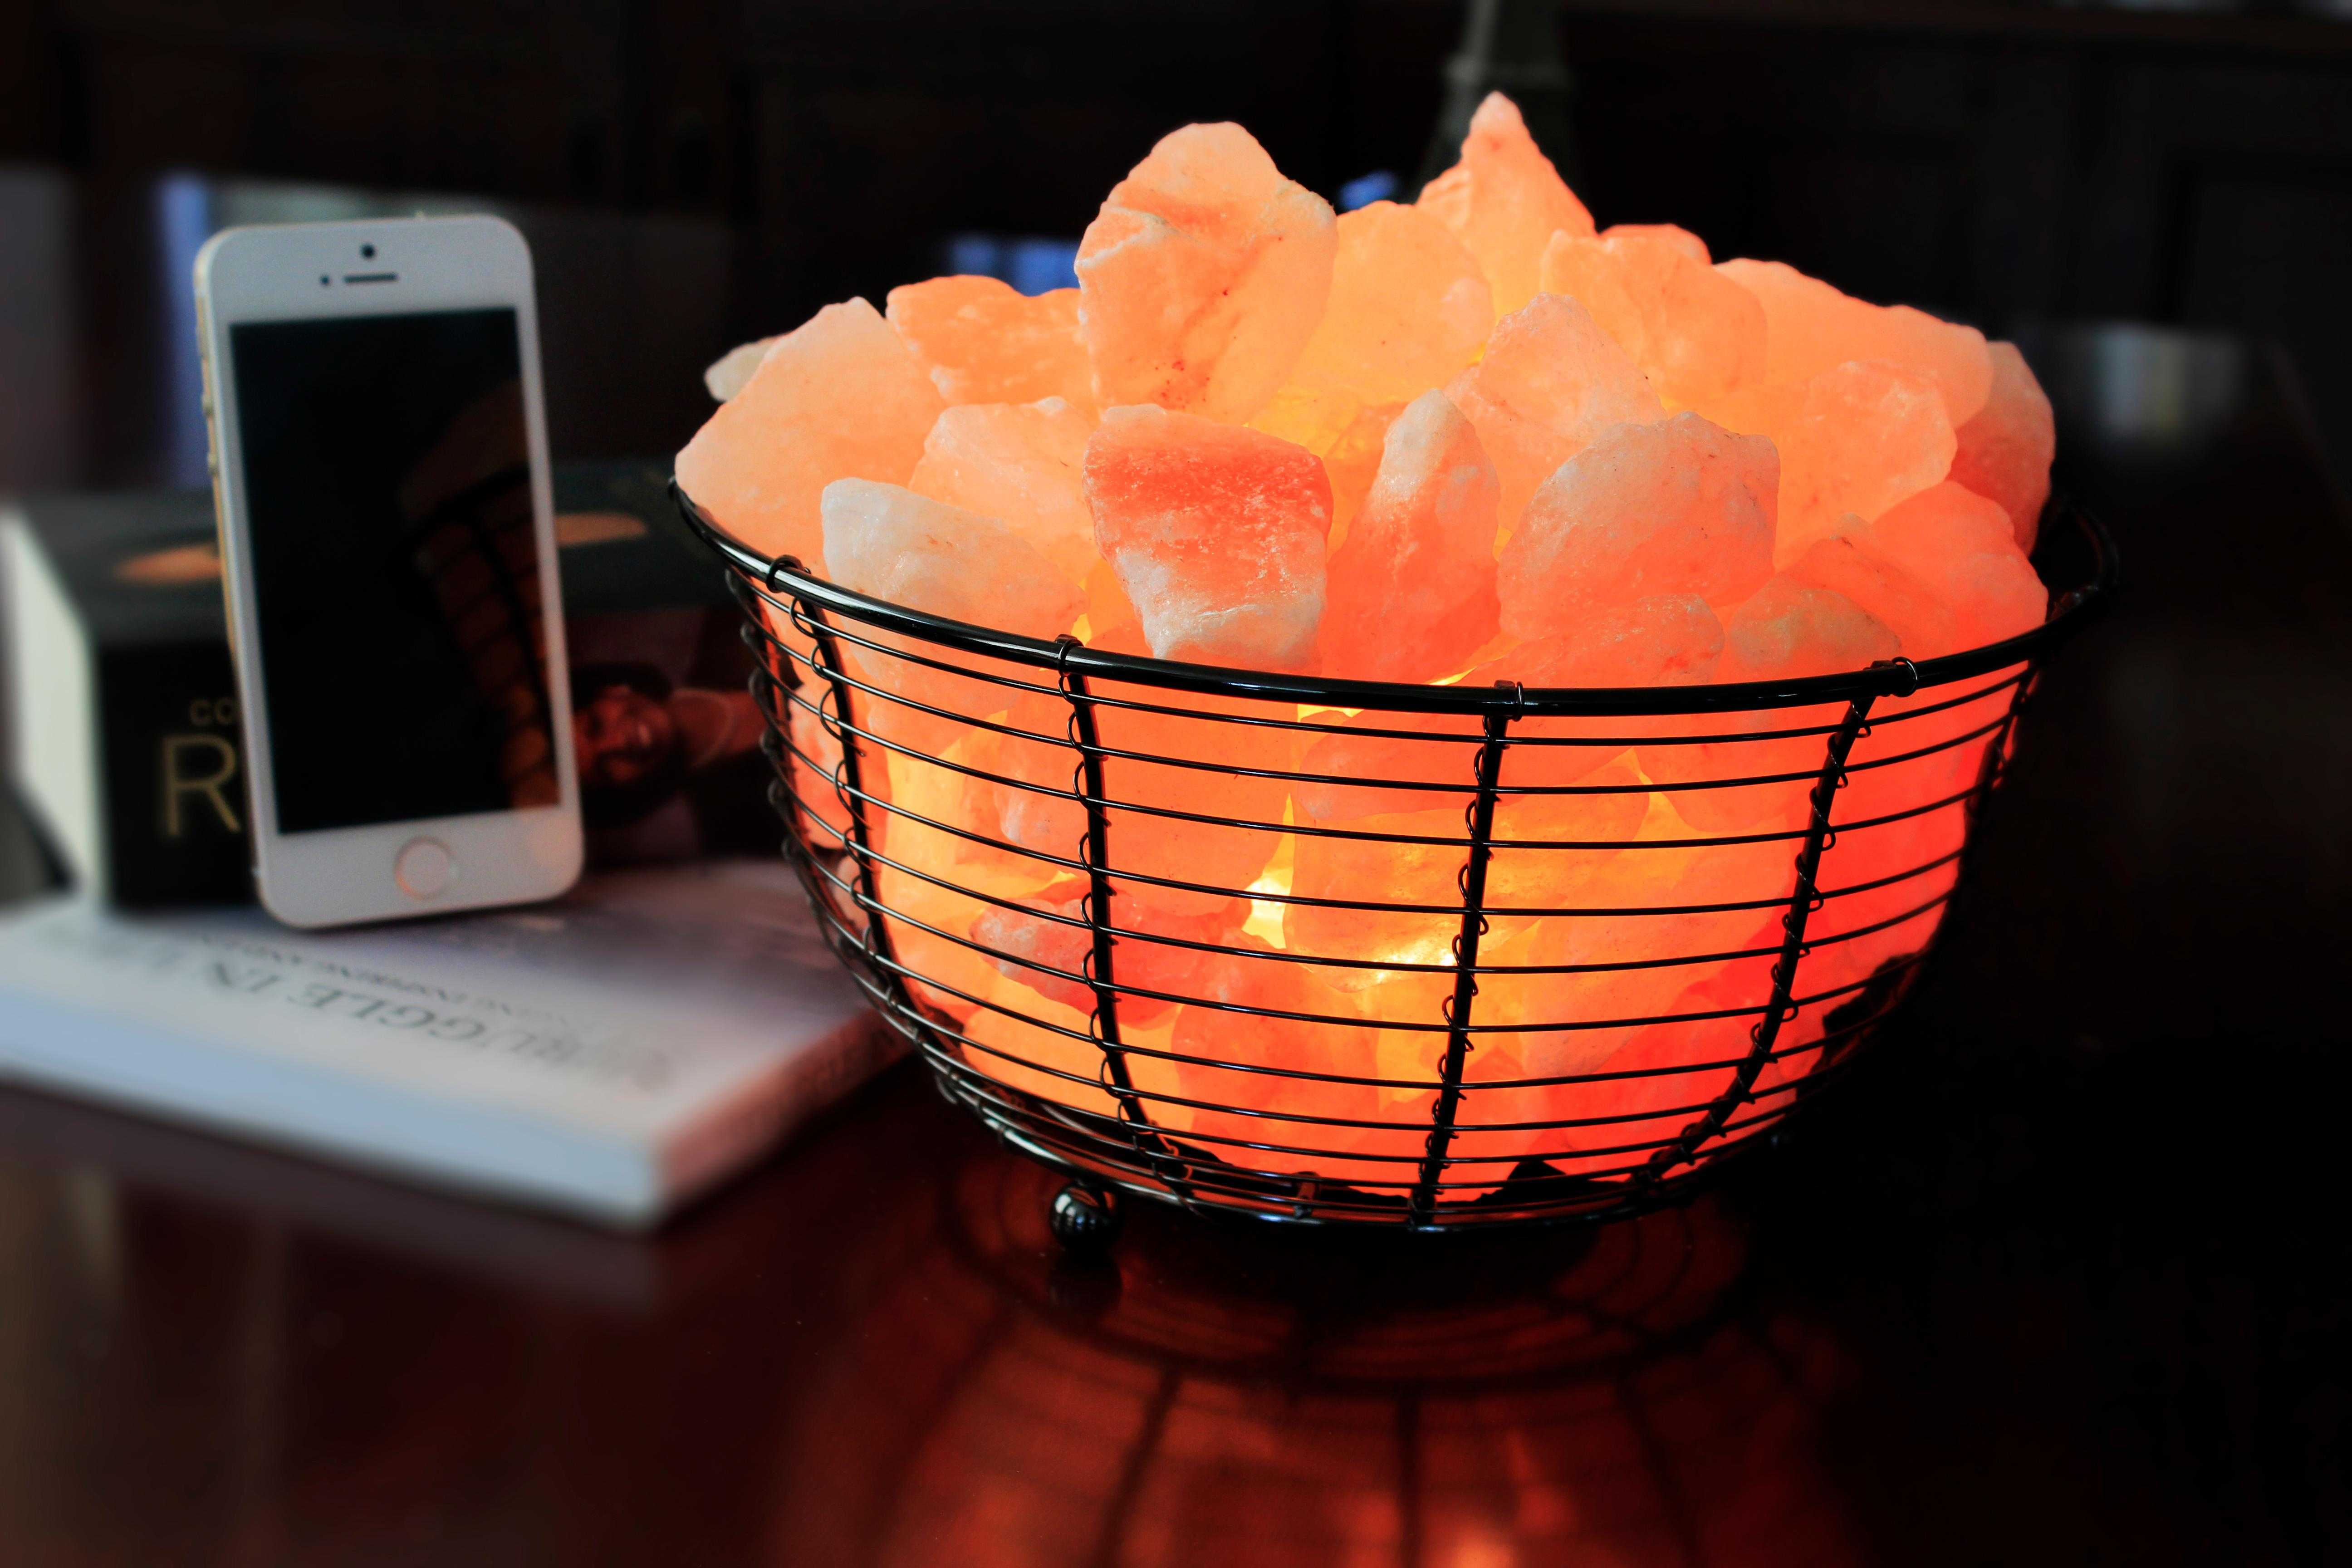 How Are Salt Lamps Made?